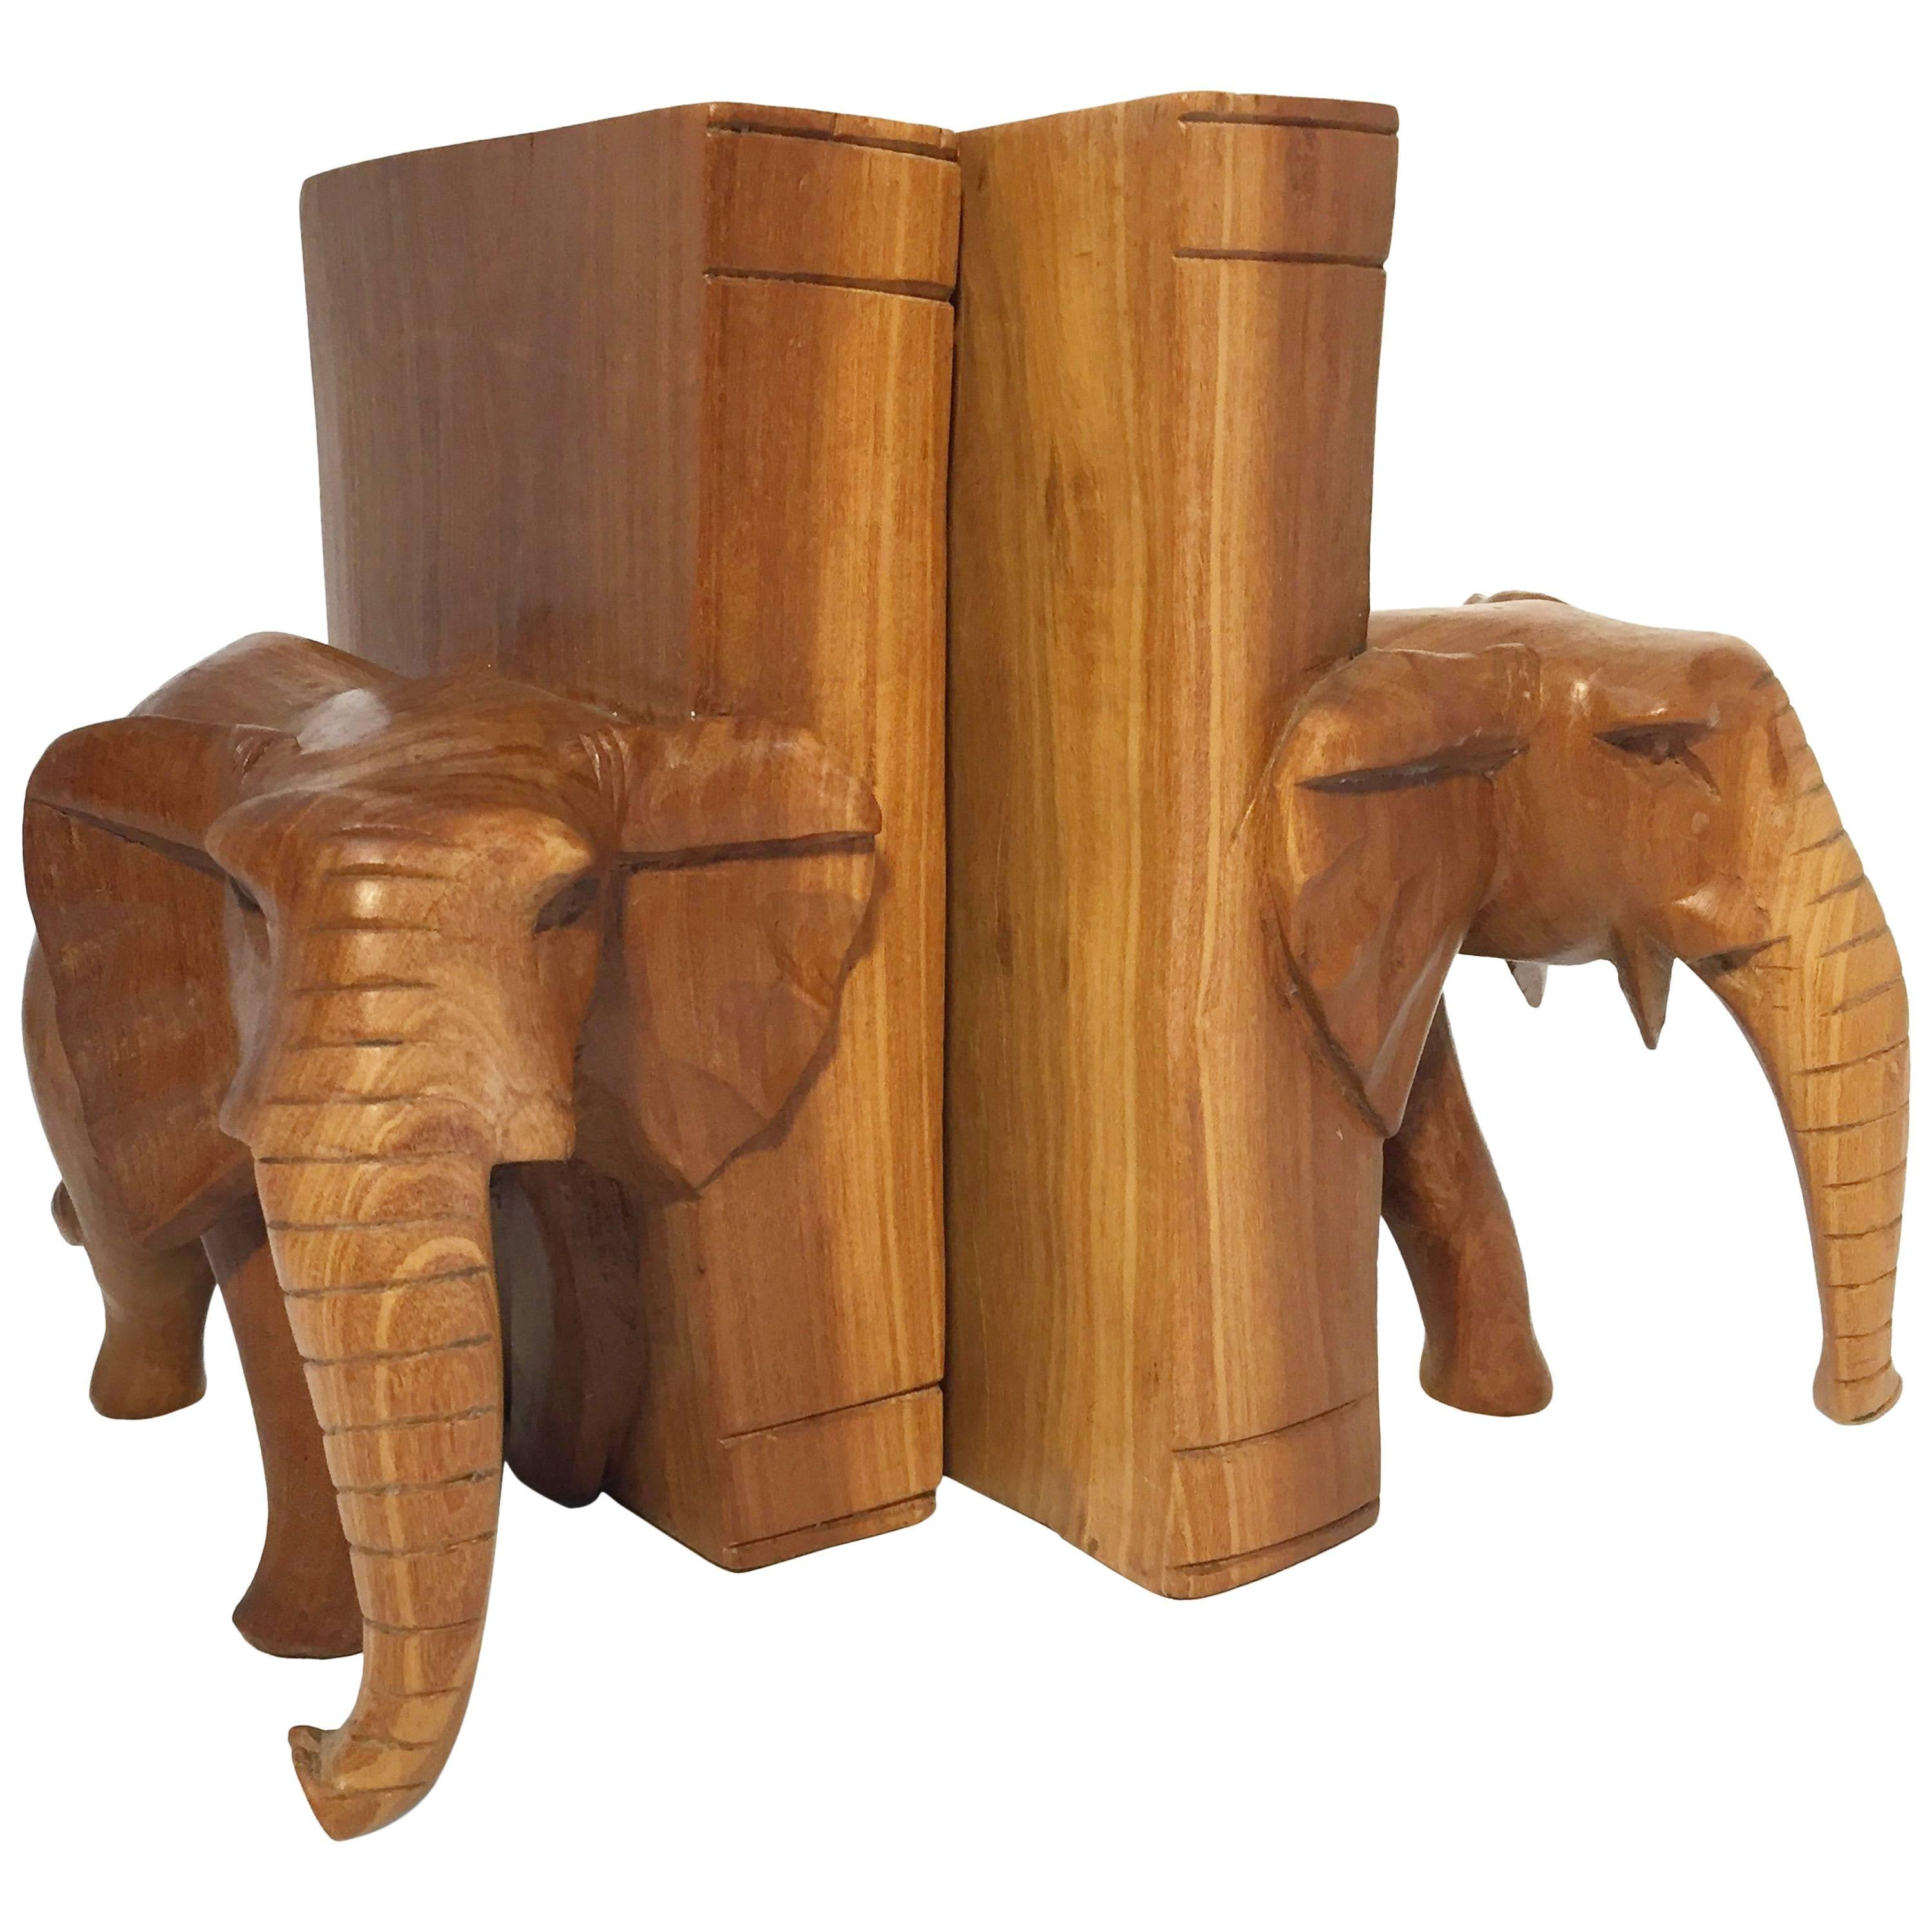 Hand-Carved Wood Elephant Bookends